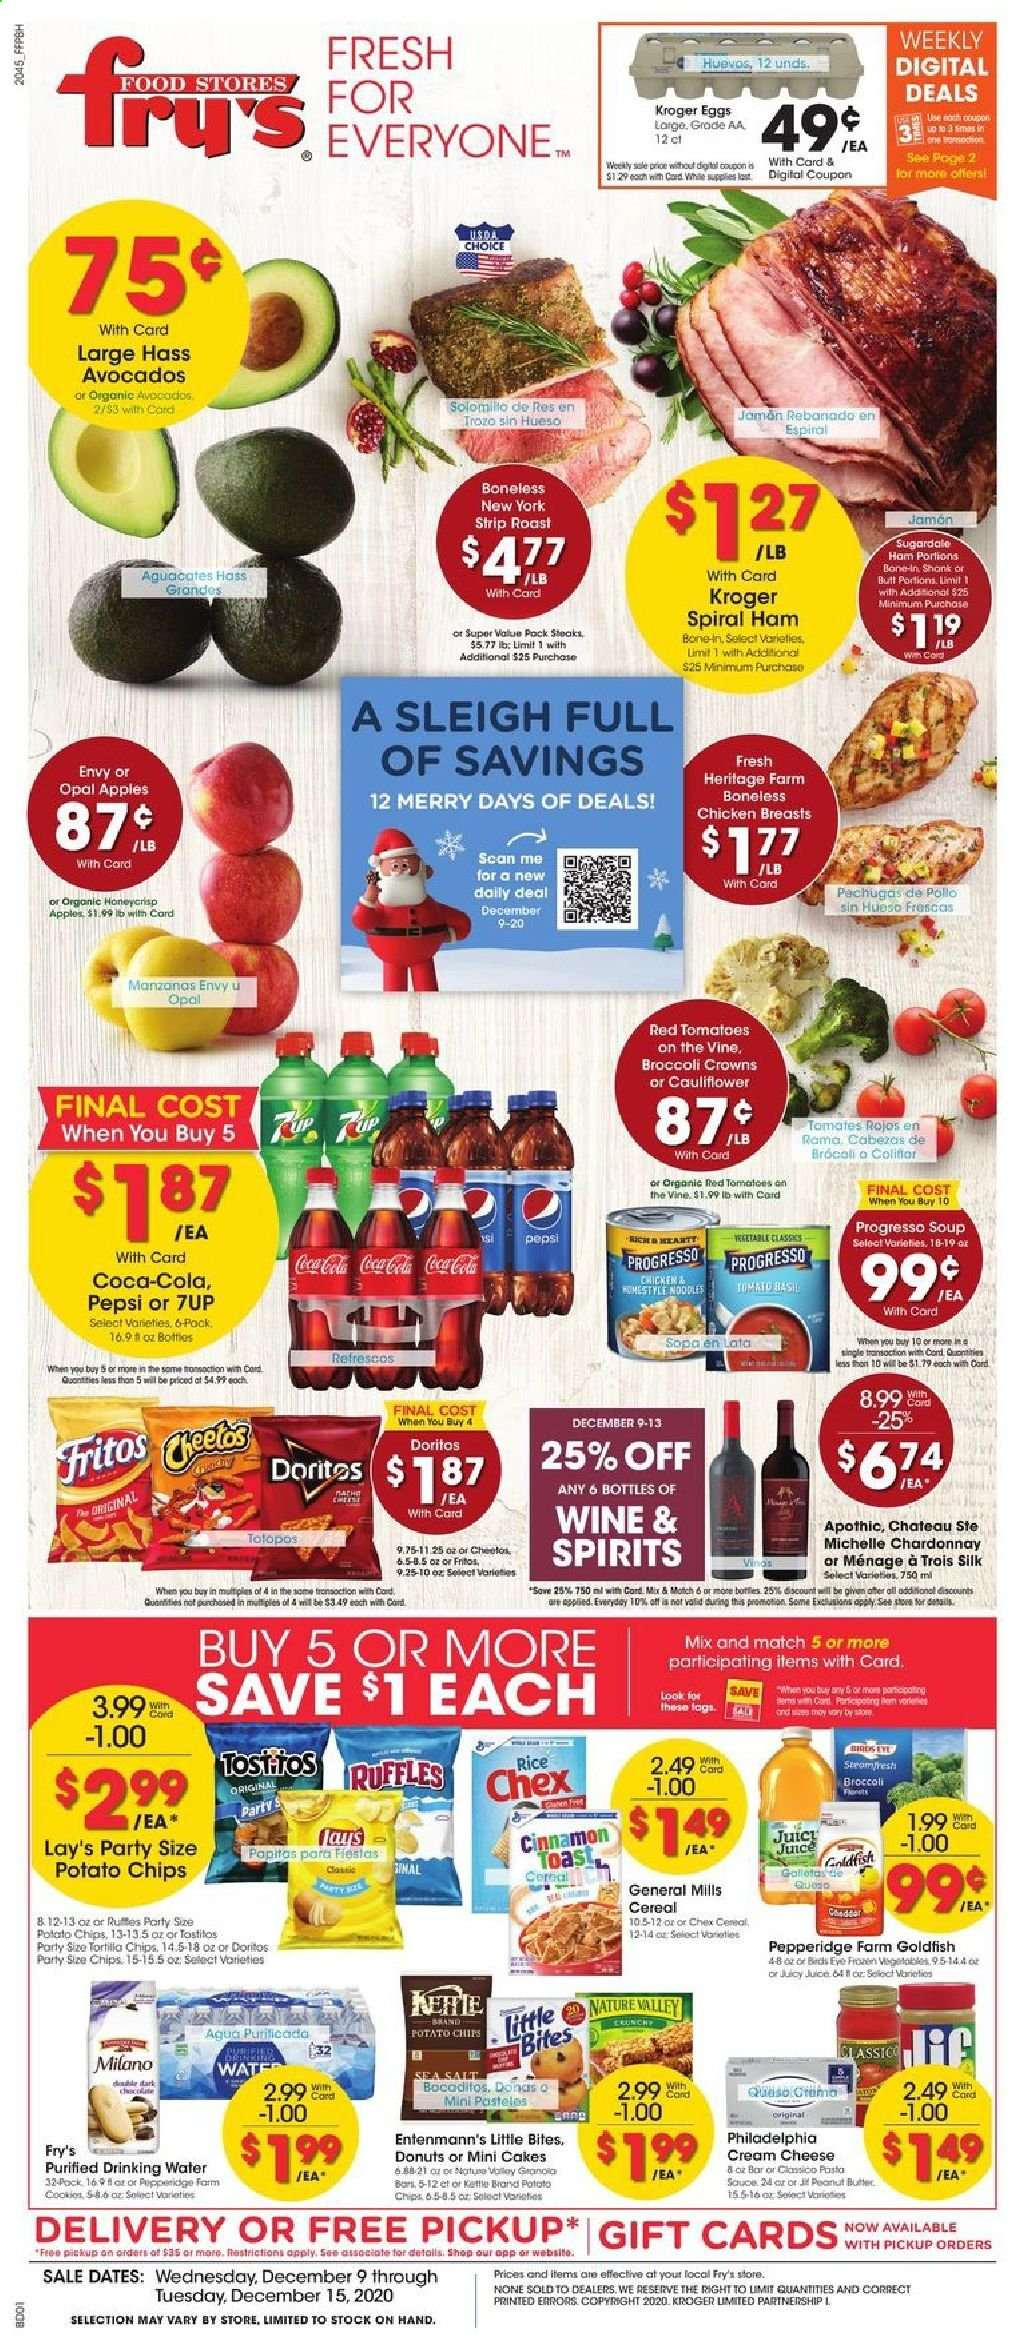 Fry's Flyer - 12.09.2020 - 12.15.2020 - Sales products - apples, avocado, basil, broccoli, cauliflower, cereals, coca-cola, cookies, cream cheese, Doritos, eggs, Fritos, frozen, rice, tomatoes, ham, philadelphia, potato chips, chardonnay, chicken, chicken breast, peanut butter, Pepsi, chips, cheese, juice, cake, soup, Rama, salt, Lay's, wine, spiral ham, sea salt, Apple, donut. Page 1.